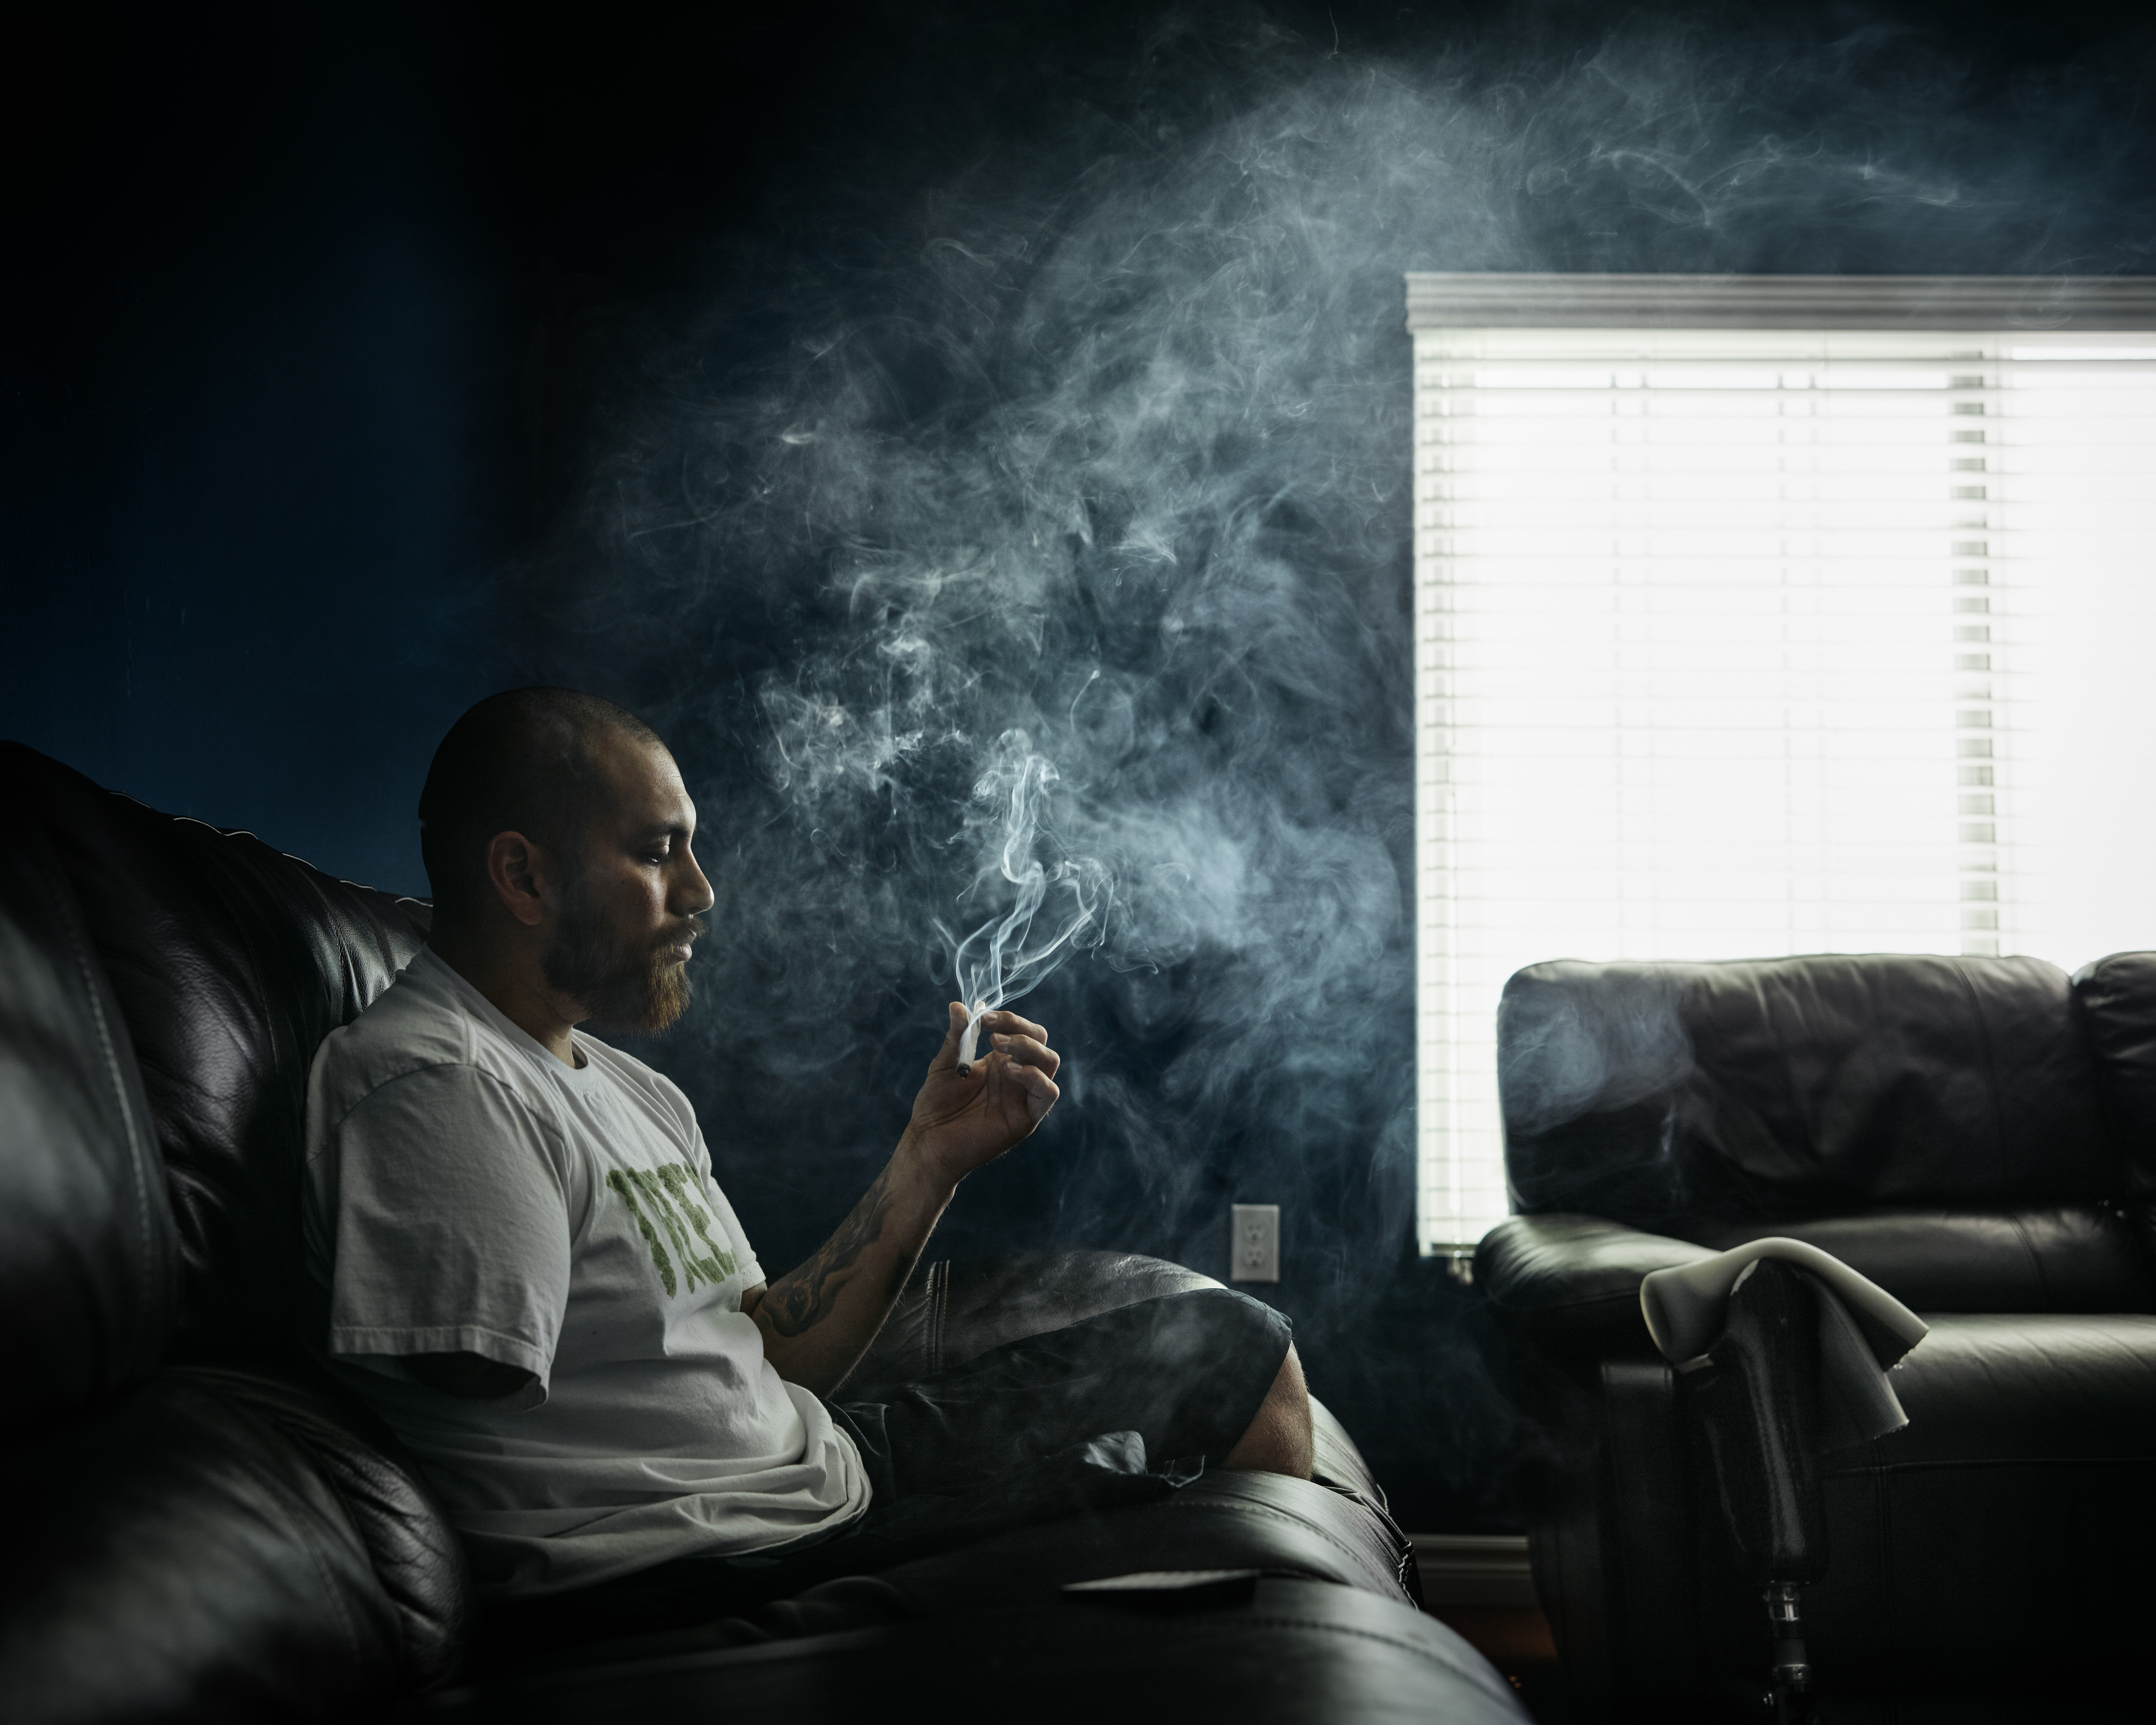 US Army veteran Jose Martinez smokes medical marijuana at his home in Apple Valley, California, June 17, 2016.                                                              As an Army infantryman in Afghanistan, he lost both legs, his right arm and his left index finger to a land mine in 2012. Martinez uses medical cannabis to soothe the phantom pains of his missing limbs and to ease his suffering from post-traumatic stress disorder.